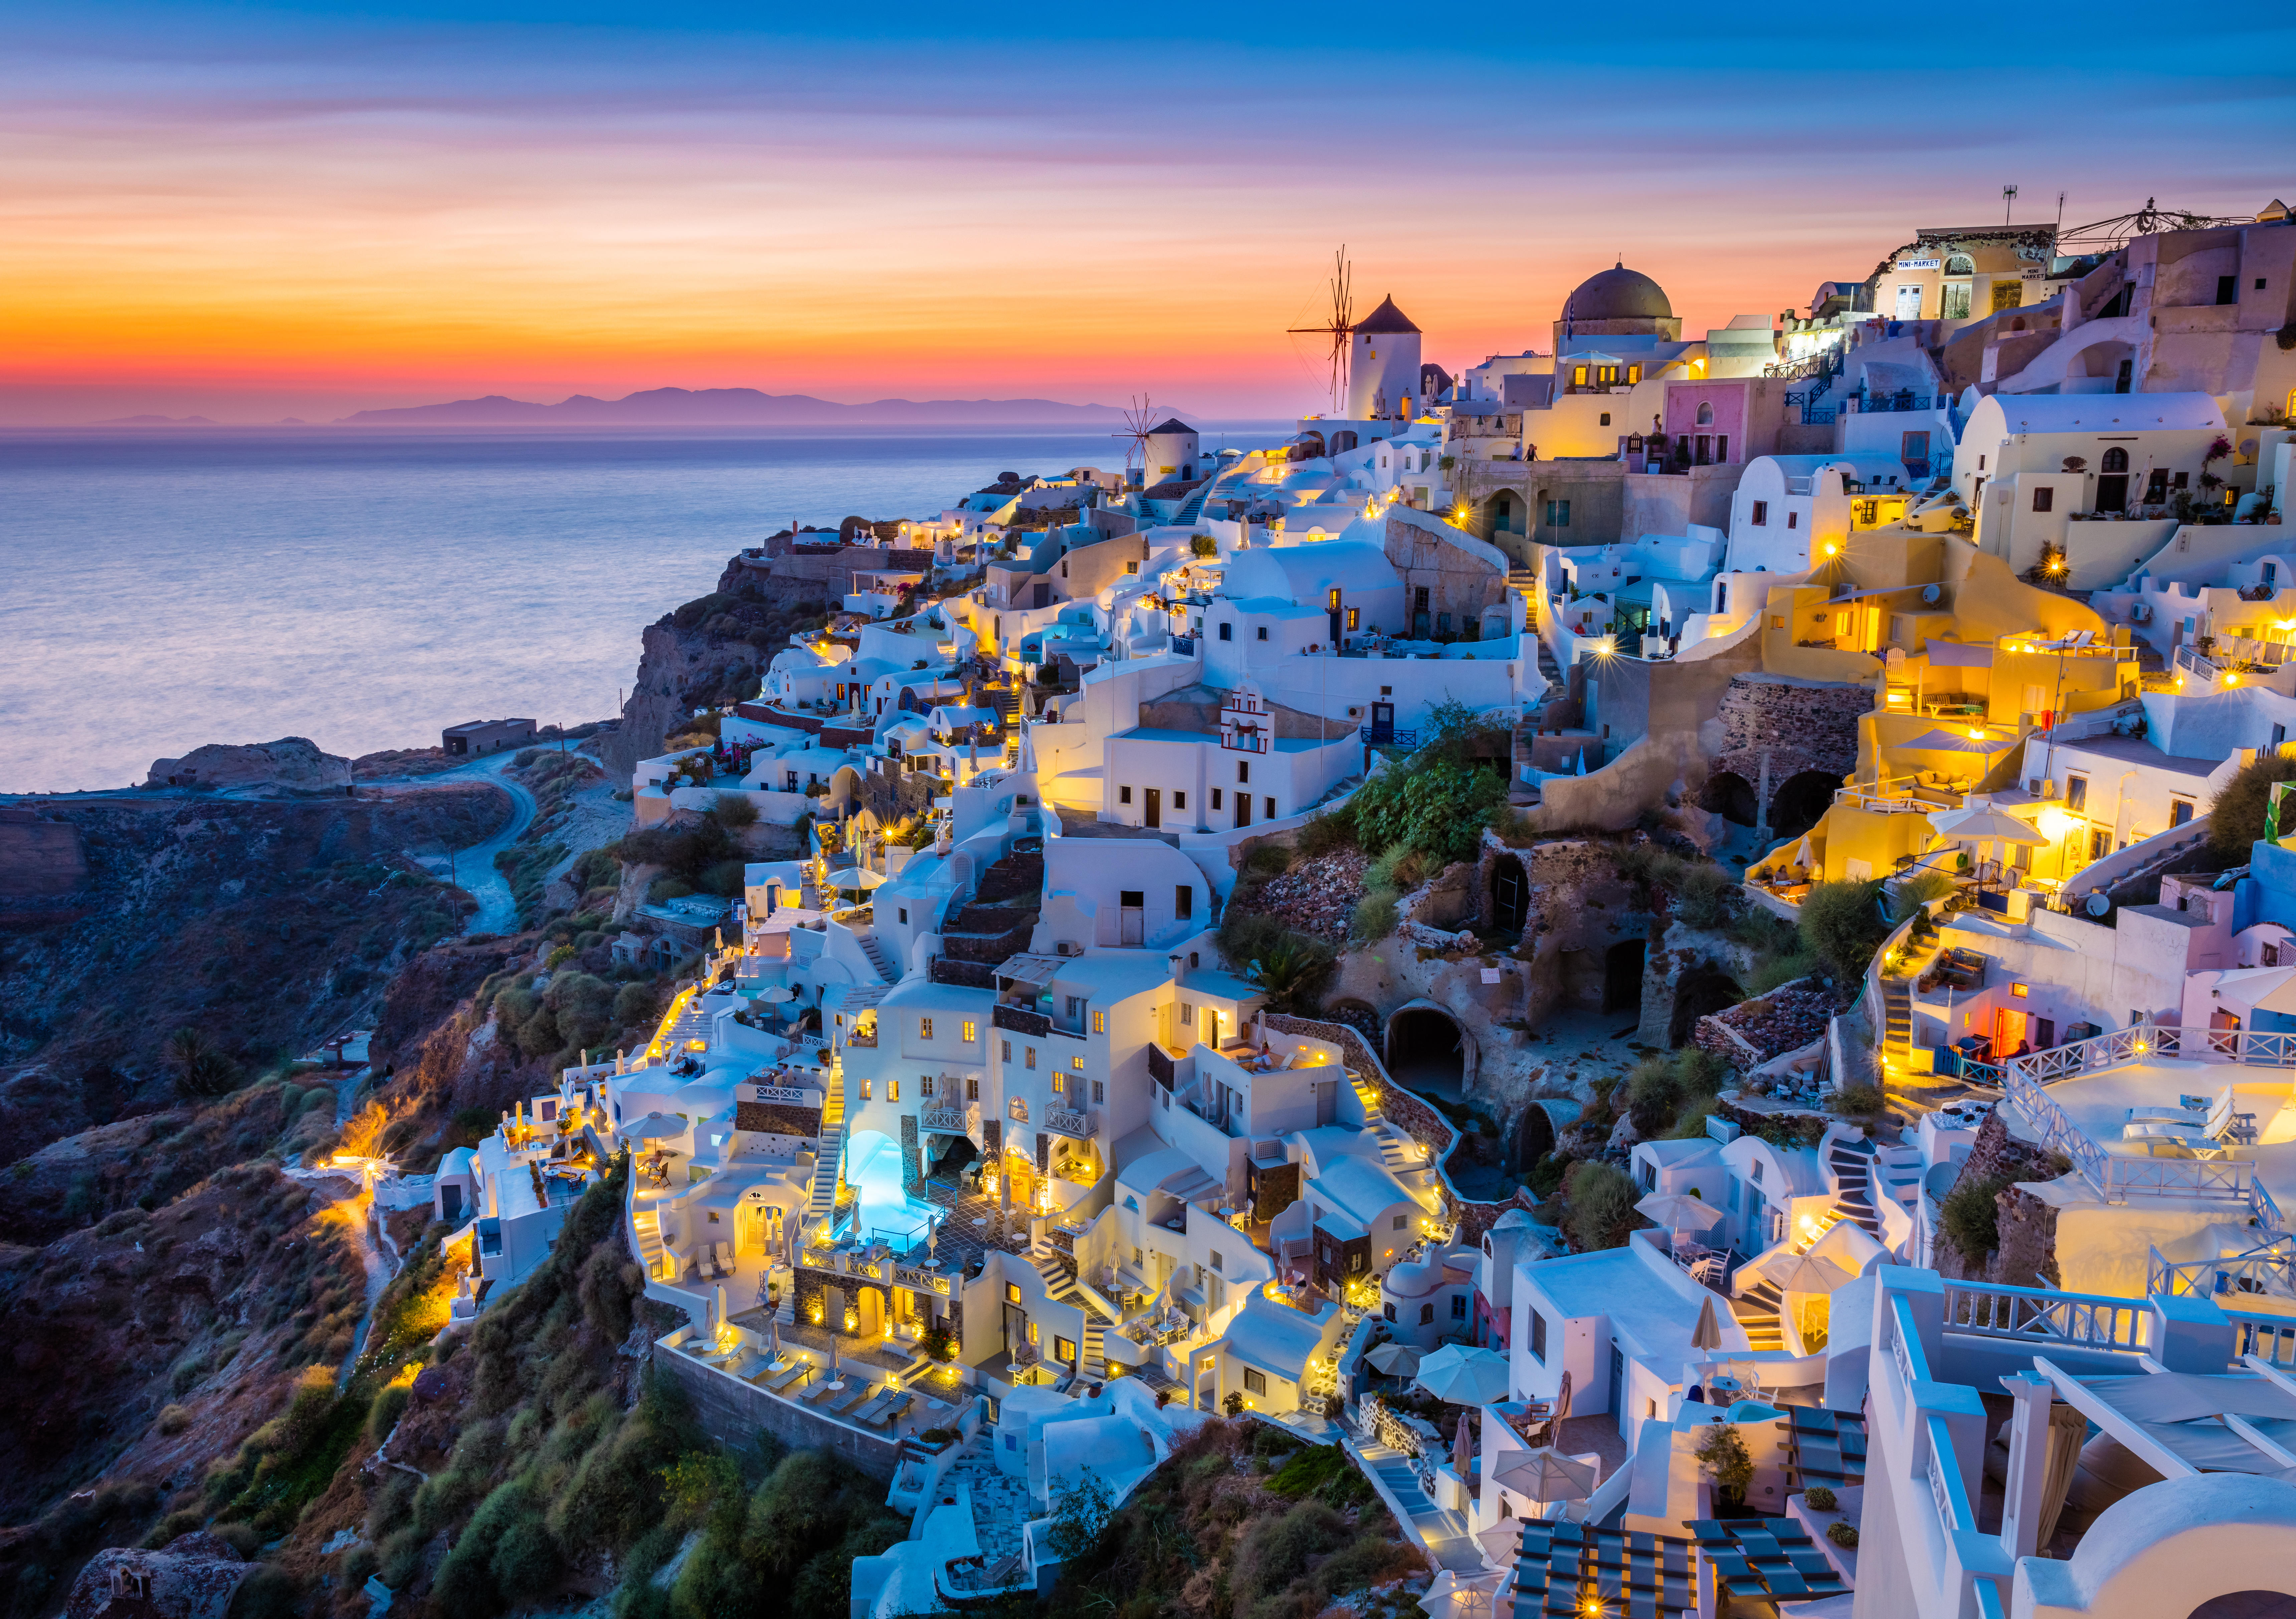 Iconic sunset in the town of Oia on the greek island Santorini (Thera).